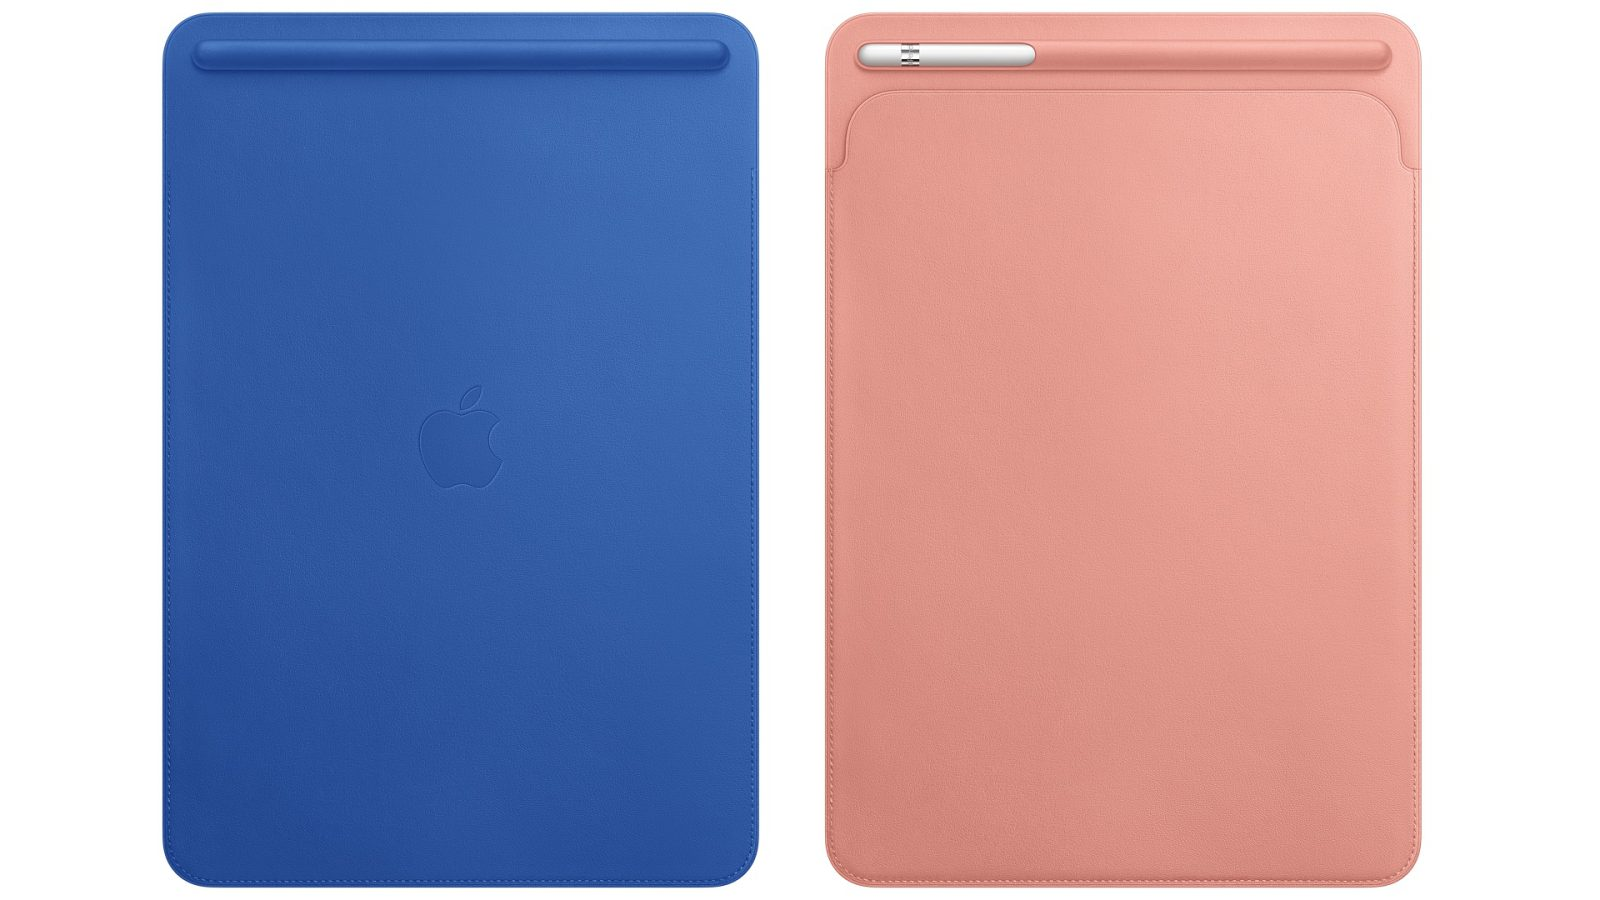 5f5c0ac1c062 Apple launches new spring-inspired Leather Sleeve and Smart Cover colors  for 10.5-inch iPad Pro